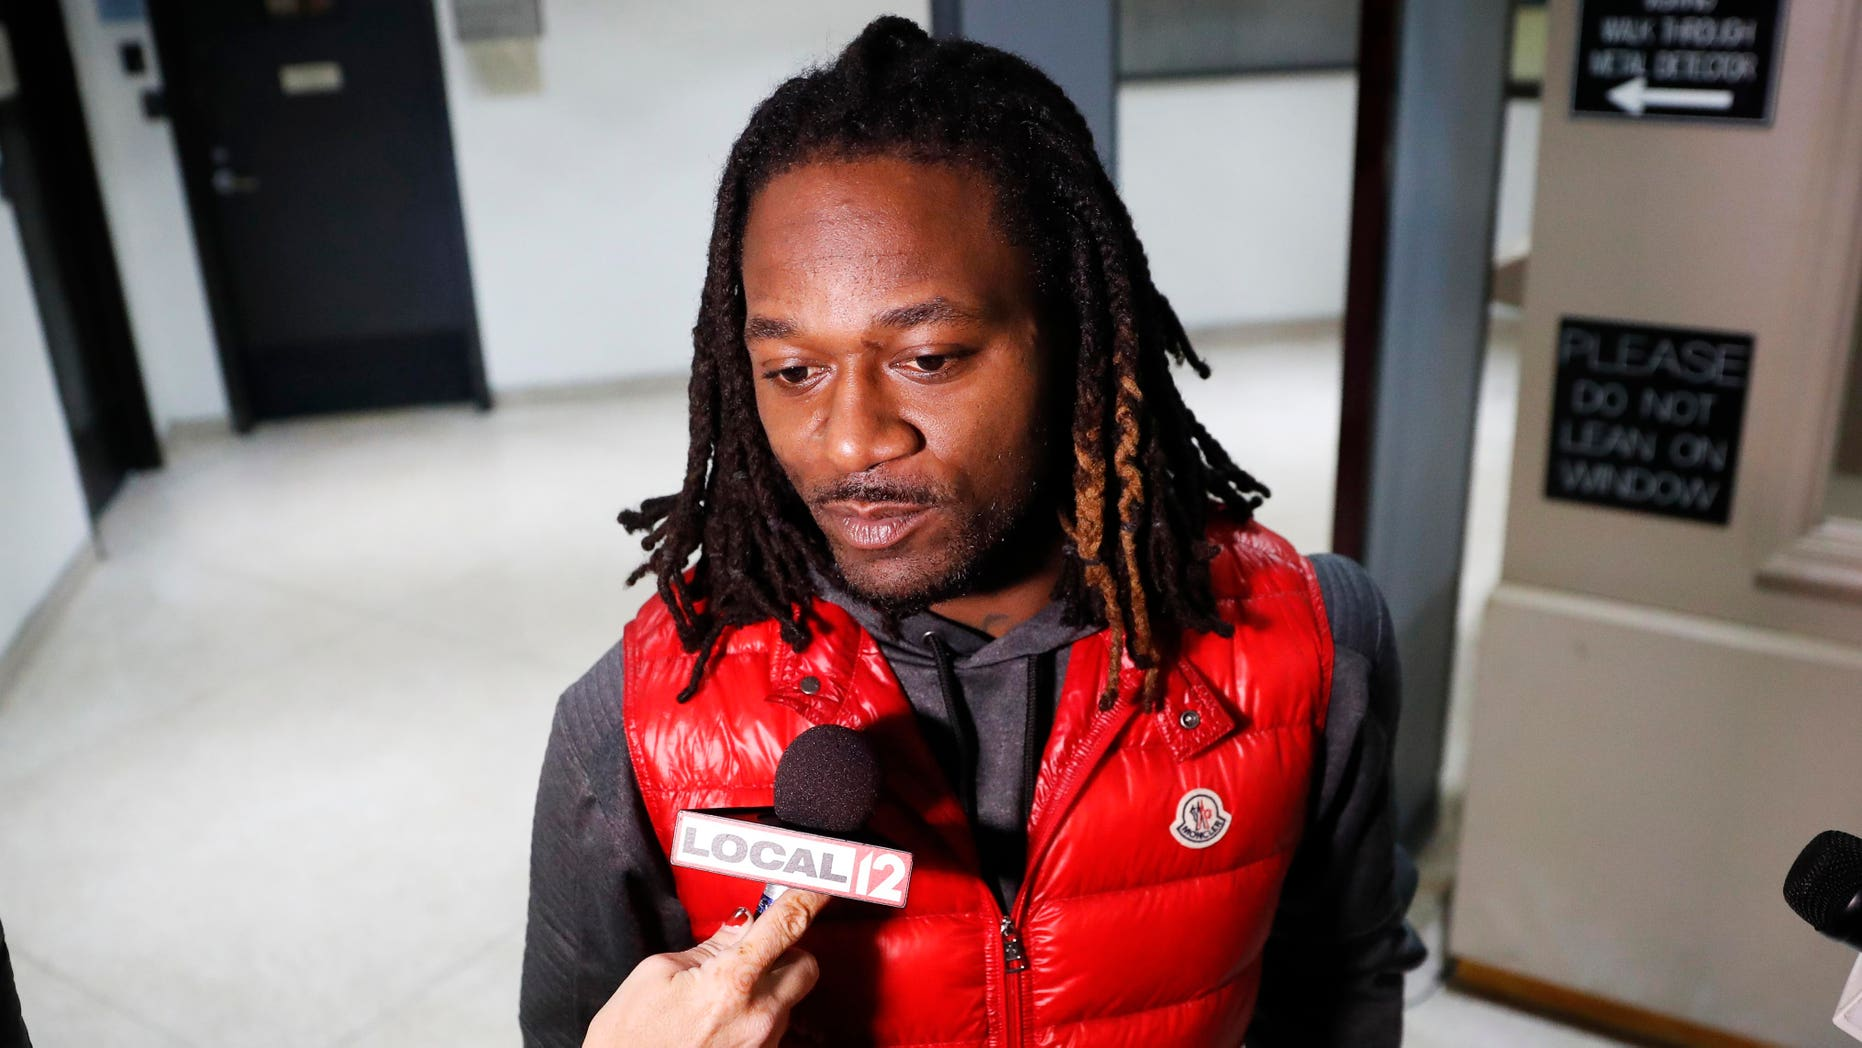 """Bengals cornerback Adam """"Pacman"""" Jones speaks to reporters as he is released from the Hamilton County Justice Center after be charged with felony harassment with a bodily substance, , Wednesday, Jan. 4, 2017, in Cincinnati. He is also charged with assault, disorderly conduct and obstructing police. An attorney representing Jones has told a Hamilton County judge that he """"vehemently denies"""" the charges that led to his arrest. (AP Photo/John Minchillo)"""